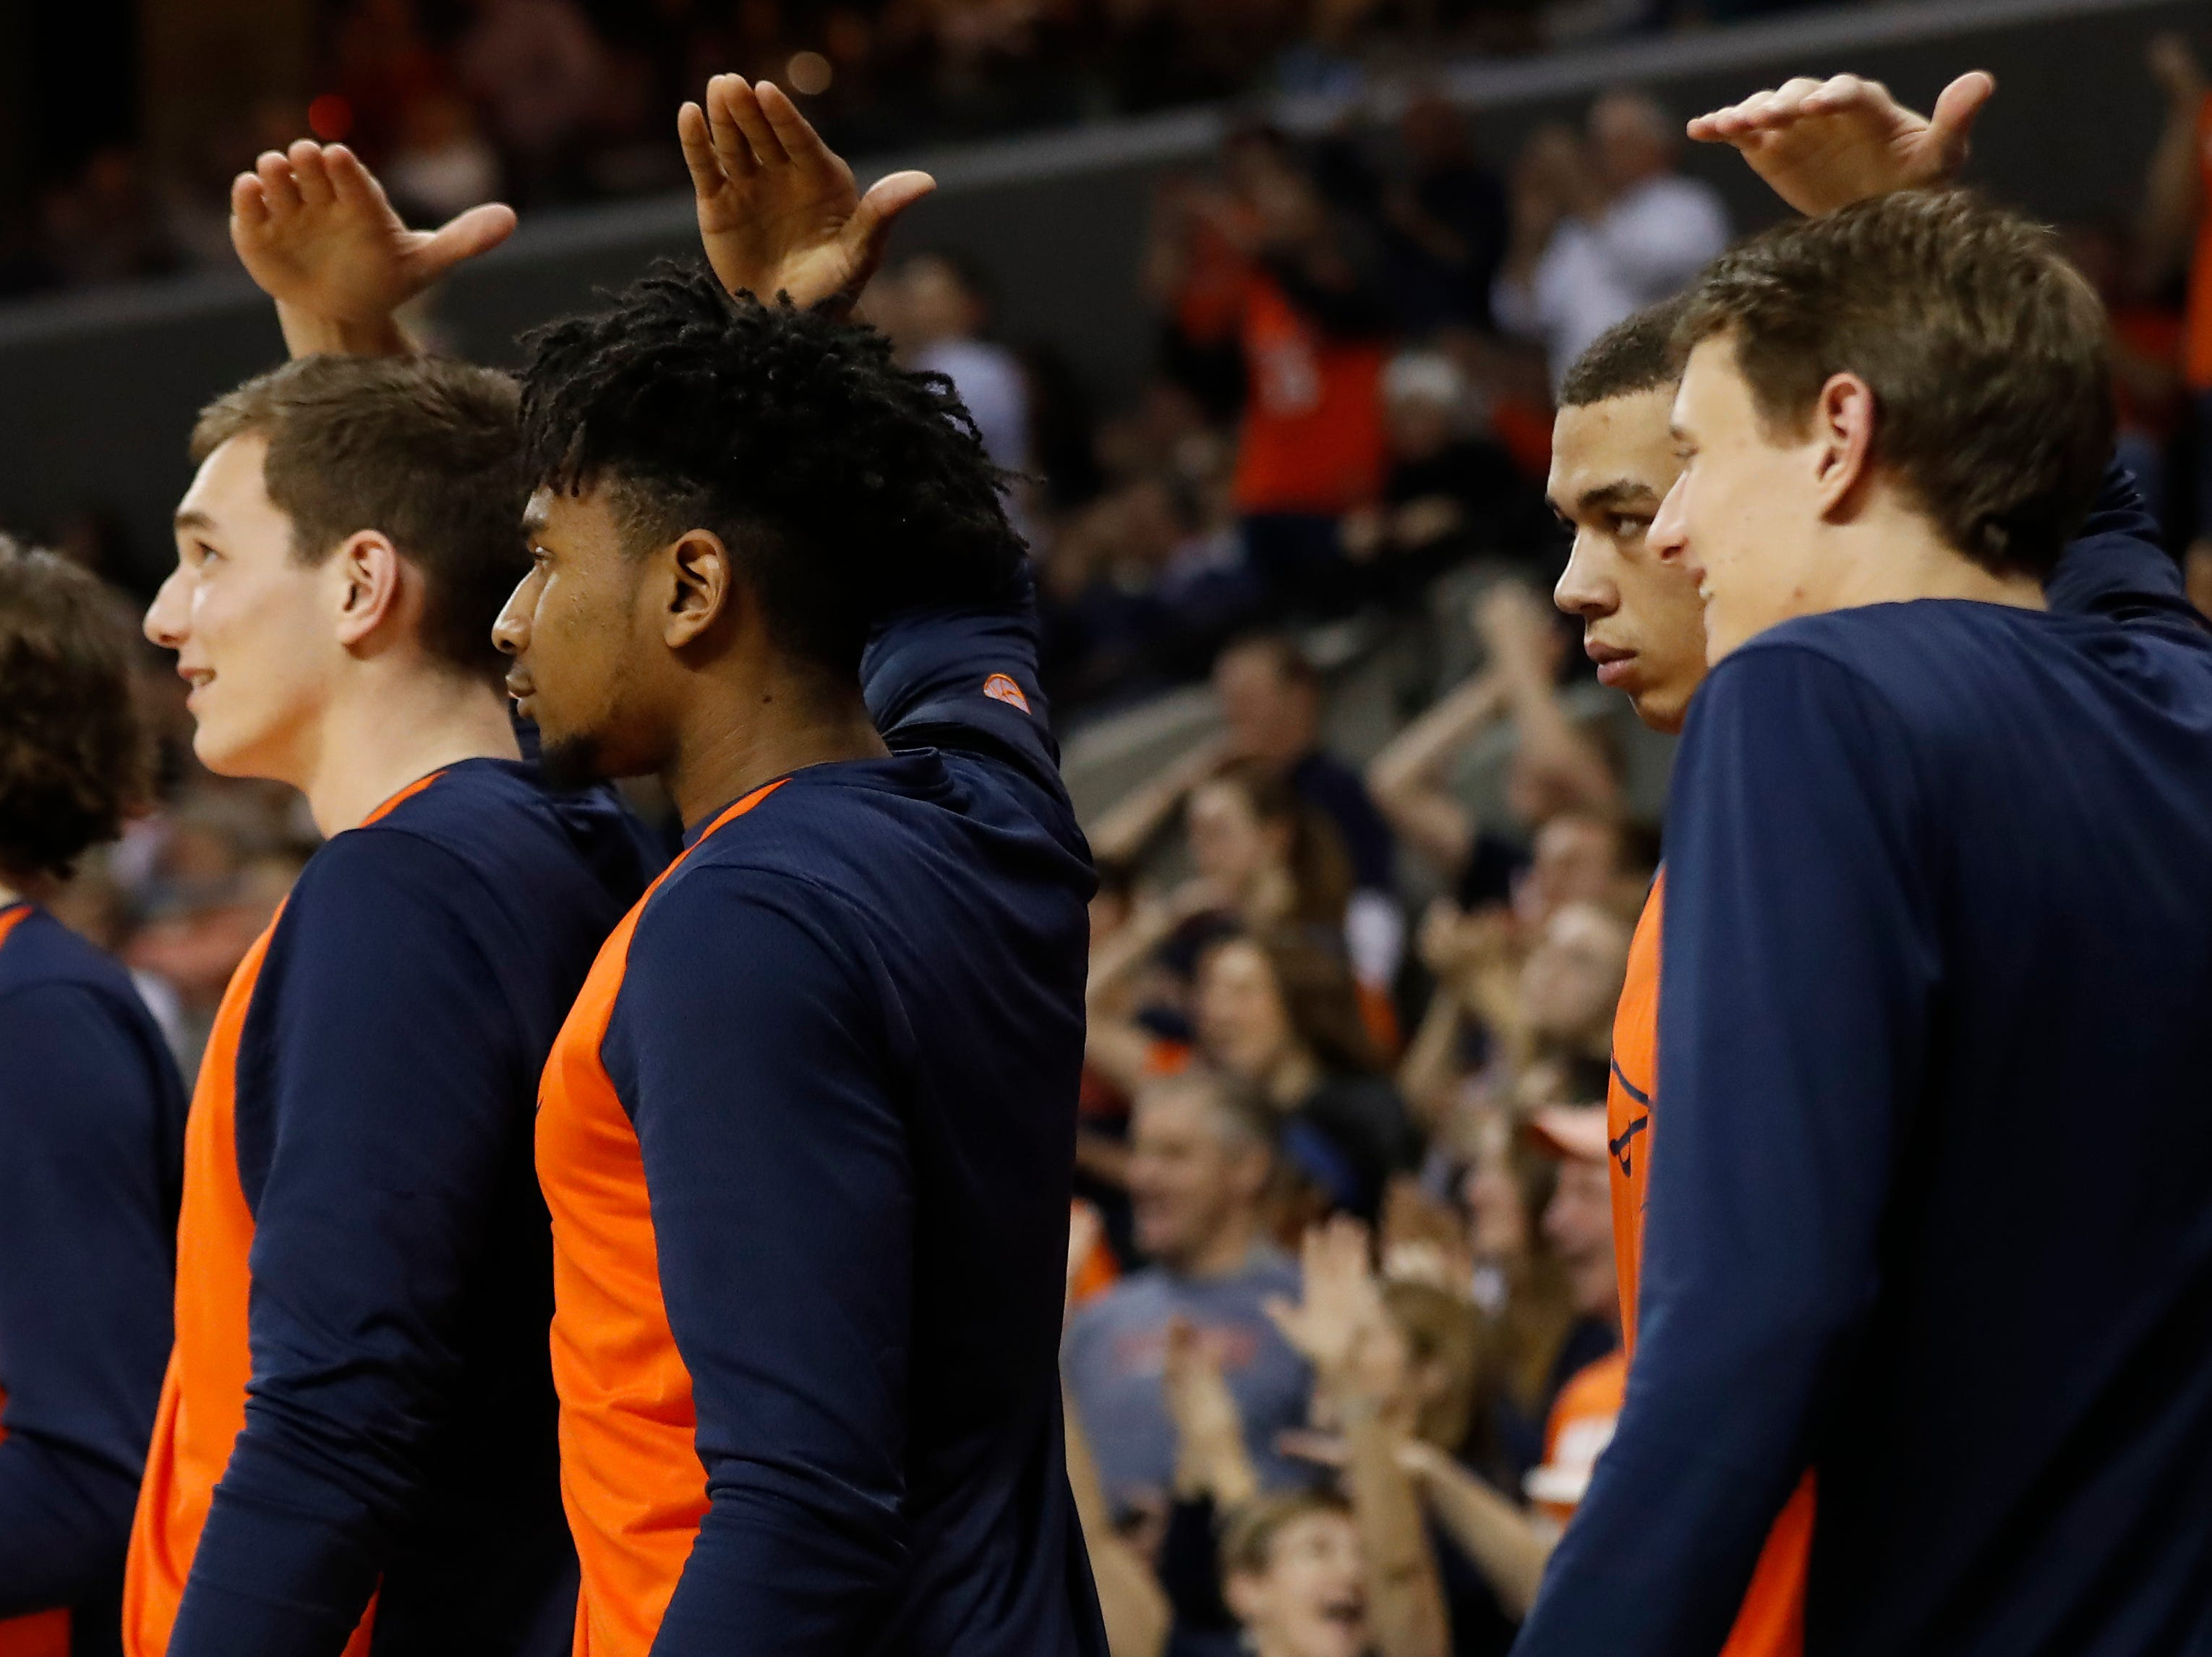 Jan 5, 2019; Charlottesville, VA, USA; Virginia Cavaliers players gesture on the bench after a shot clock violation by  the Florida State Seminoles in the second half at John Paul Jones Arena. Mandatory Credit: Geoff Burke-USA TODAY Sports